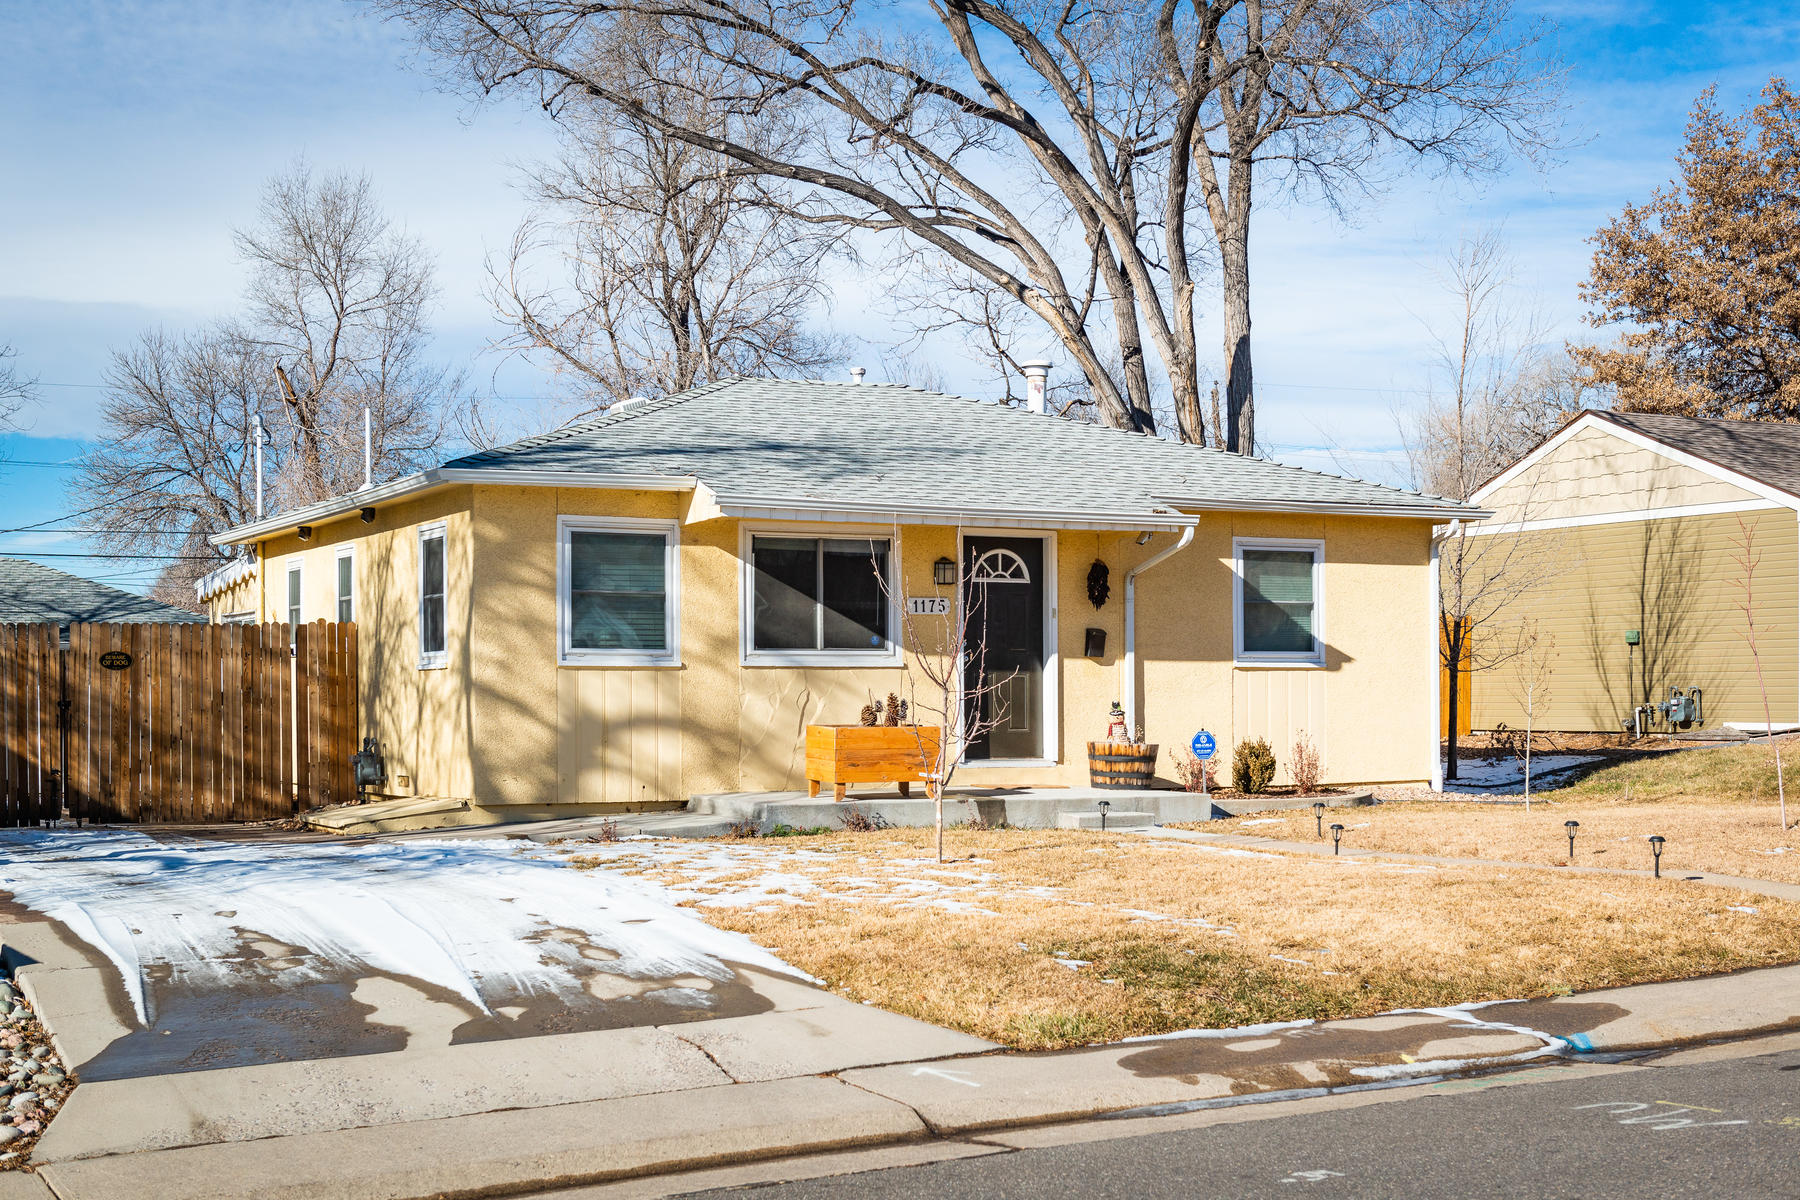 Single Family Home for Active at 1175 South Yates Street 1175 South Yates Street Denver, Colorado 80219 United States